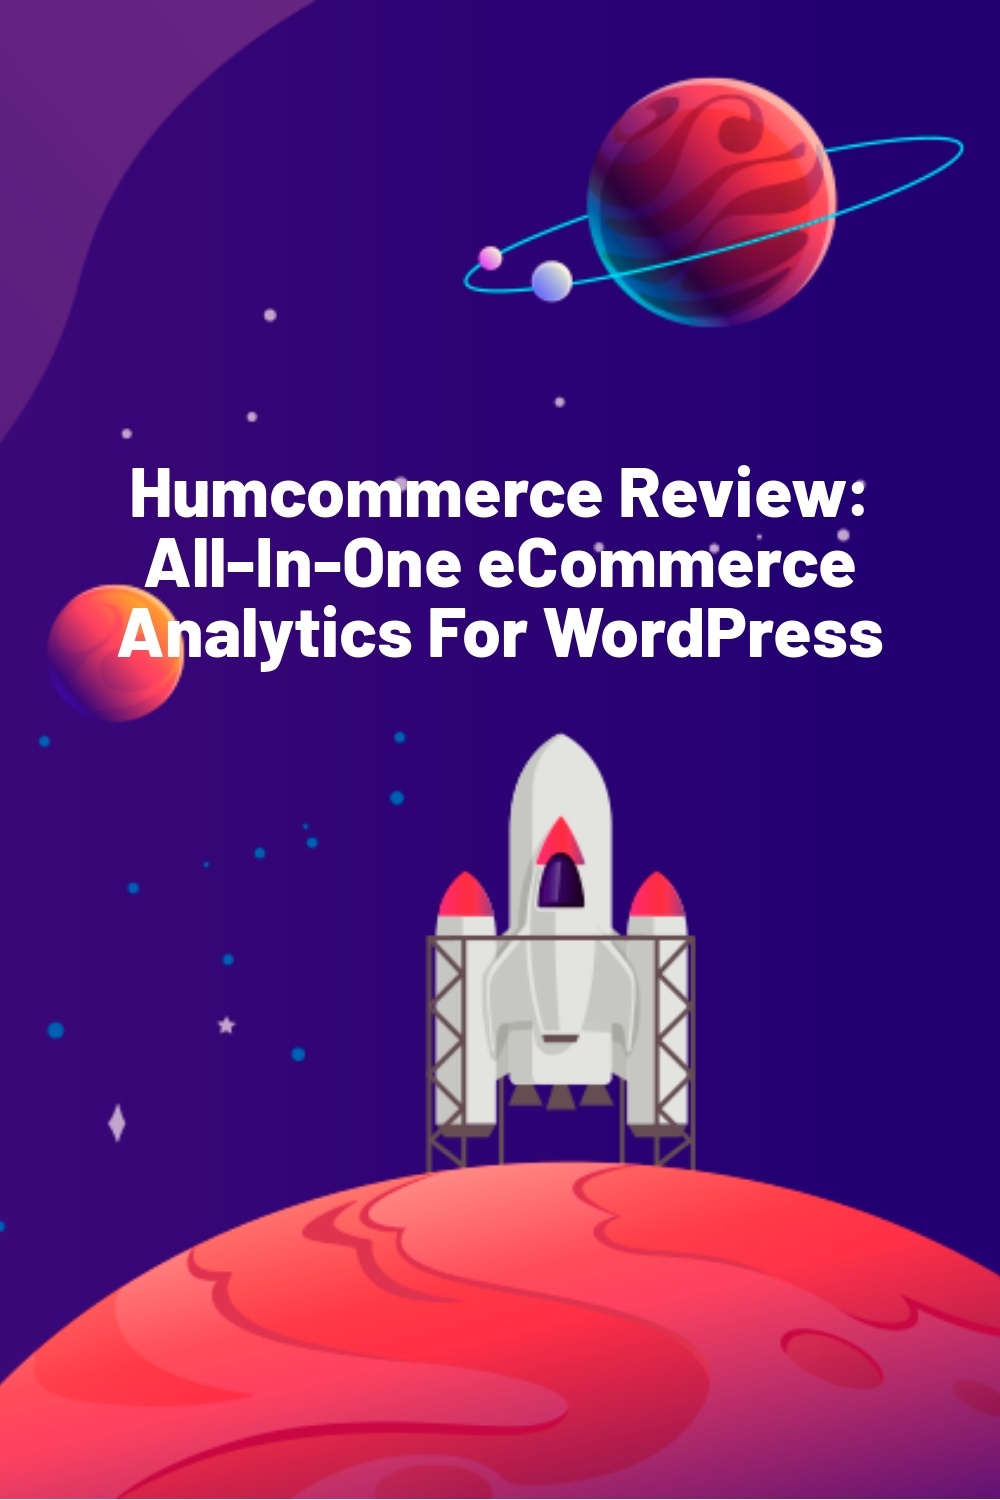 Humcommerce Review: All-In-One eCommerce Analytics For WordPress